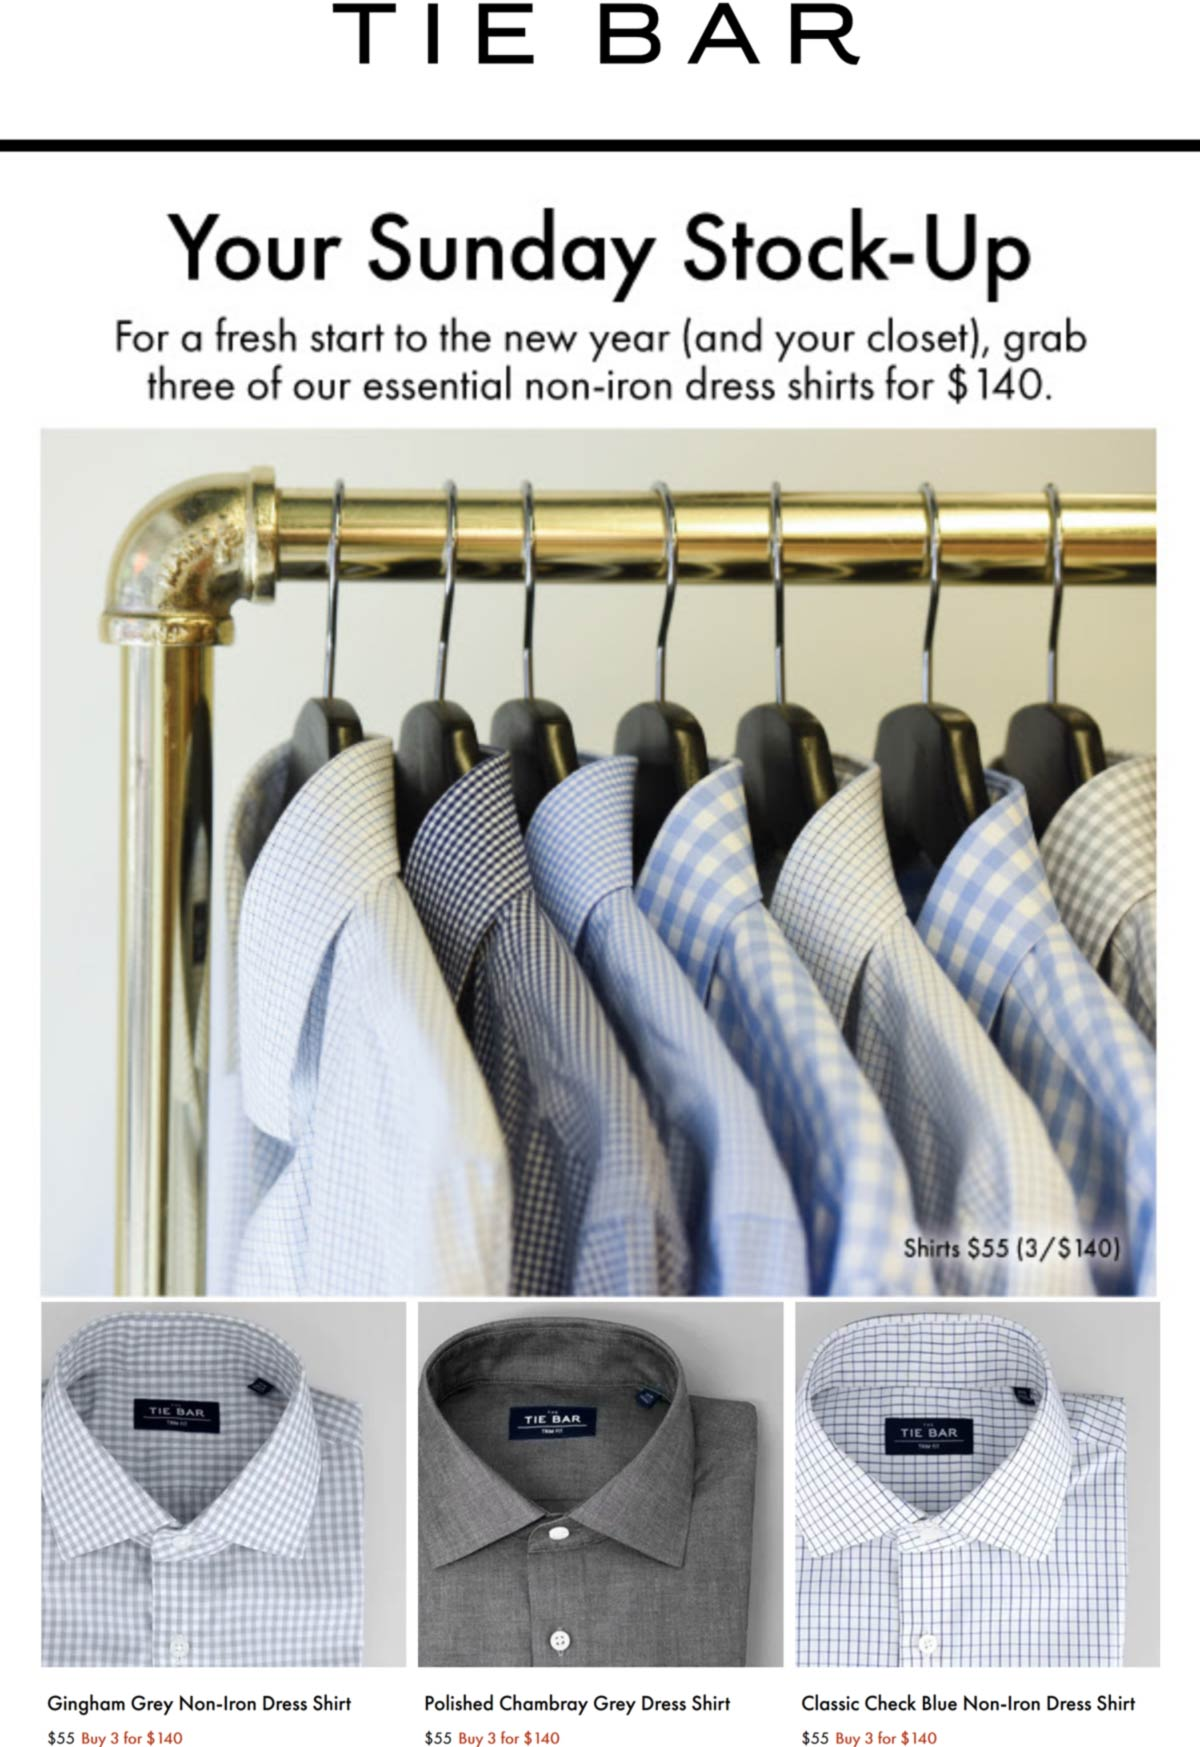 Tie Bar restaurants Coupon  $25 off 3+ shirts today at Tie Bar, ditto online #tiebar